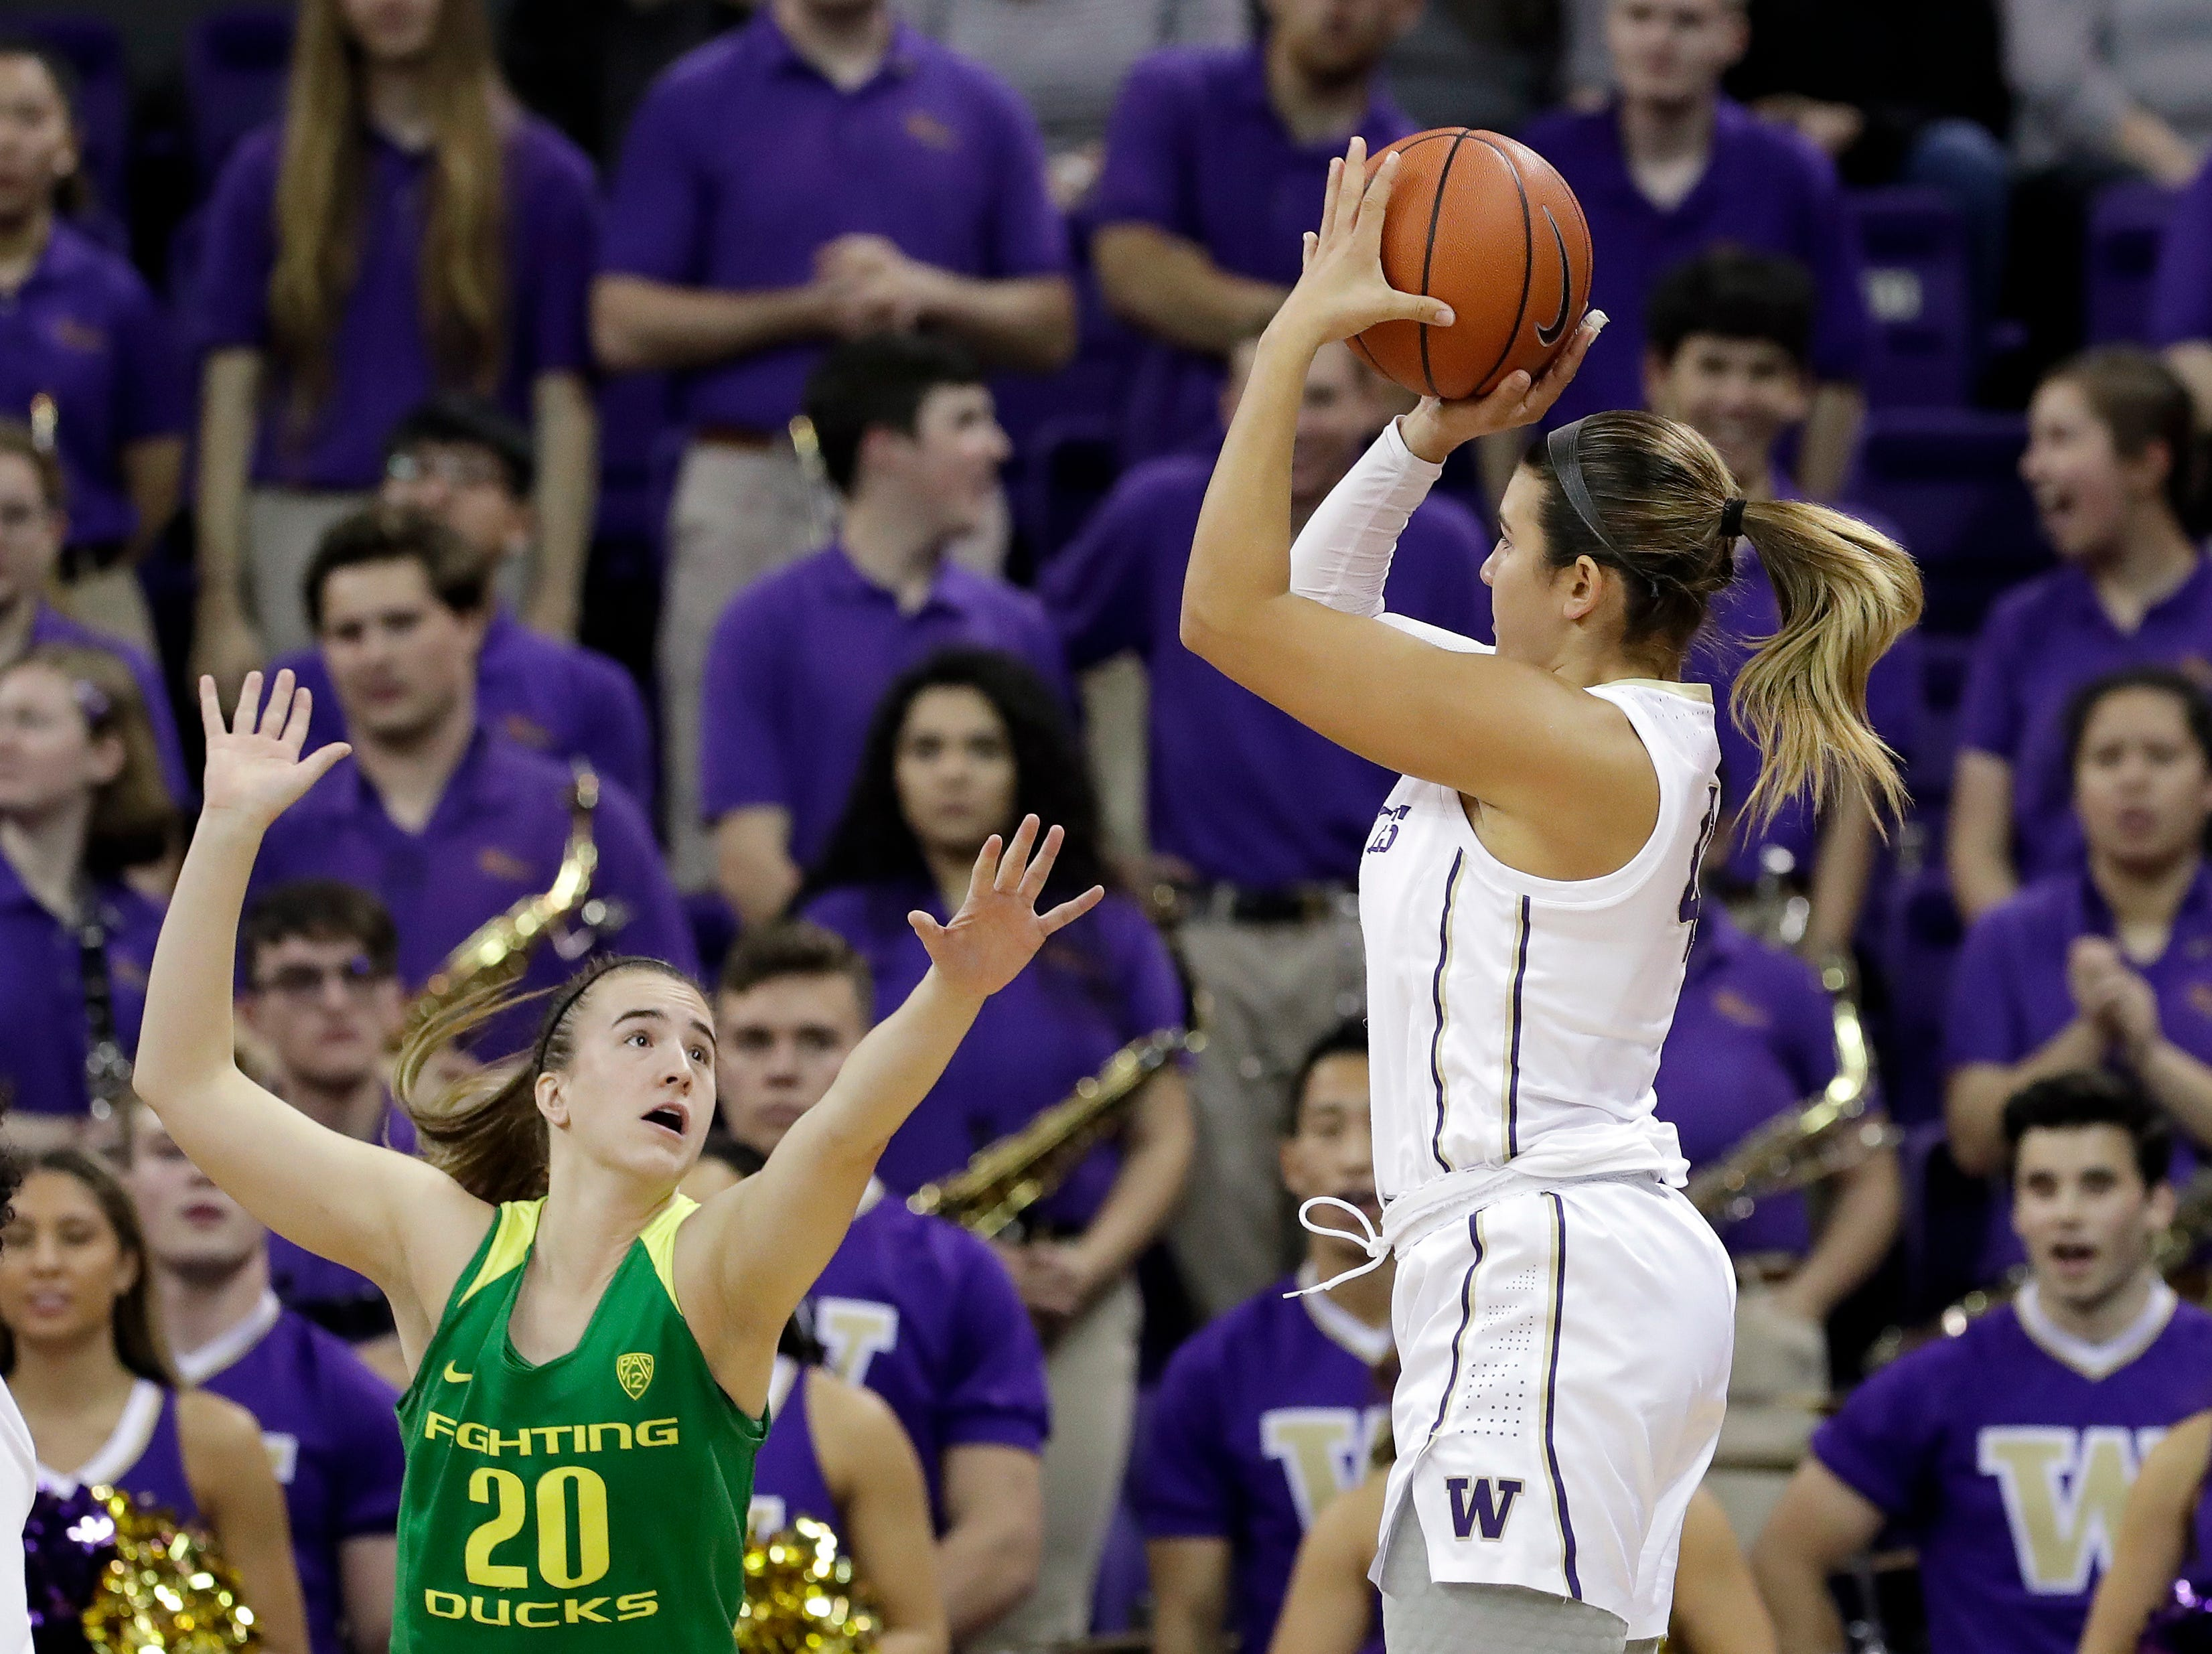 Washington's Amber Melgoza, right, takes a shot over Oregon's Sabrina Ionescu to score in the first half of an NCAA college basketball game Sunday, Jan. 27, 2019, in Seattle. The shot put Melgoza over 1,000 points in her career.